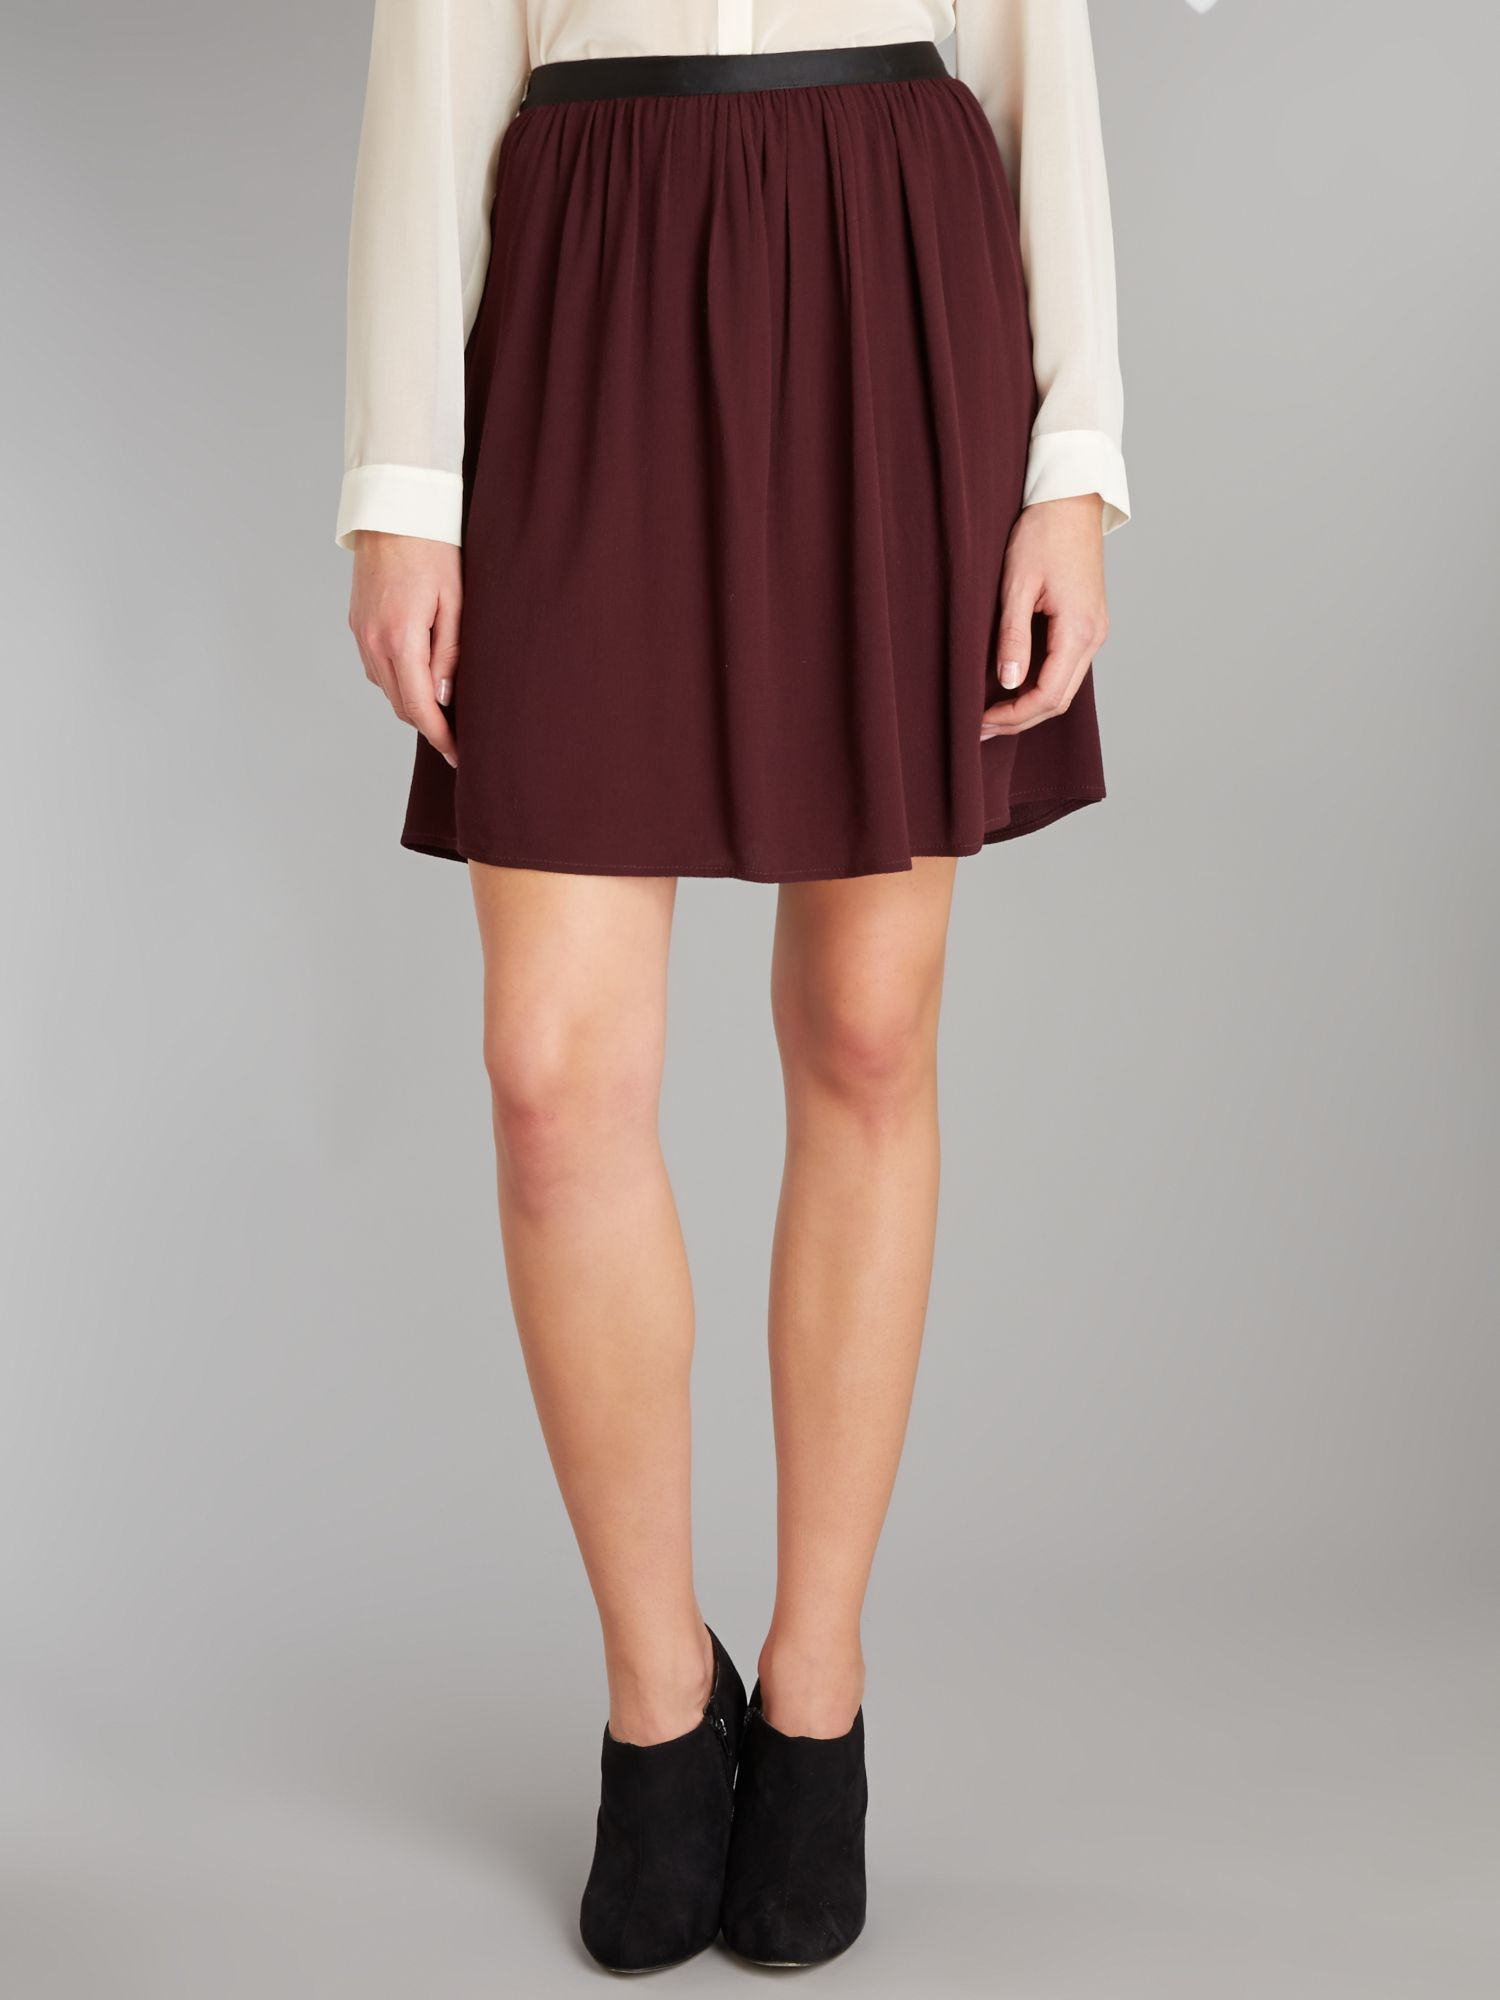 Mini plain skater skirt